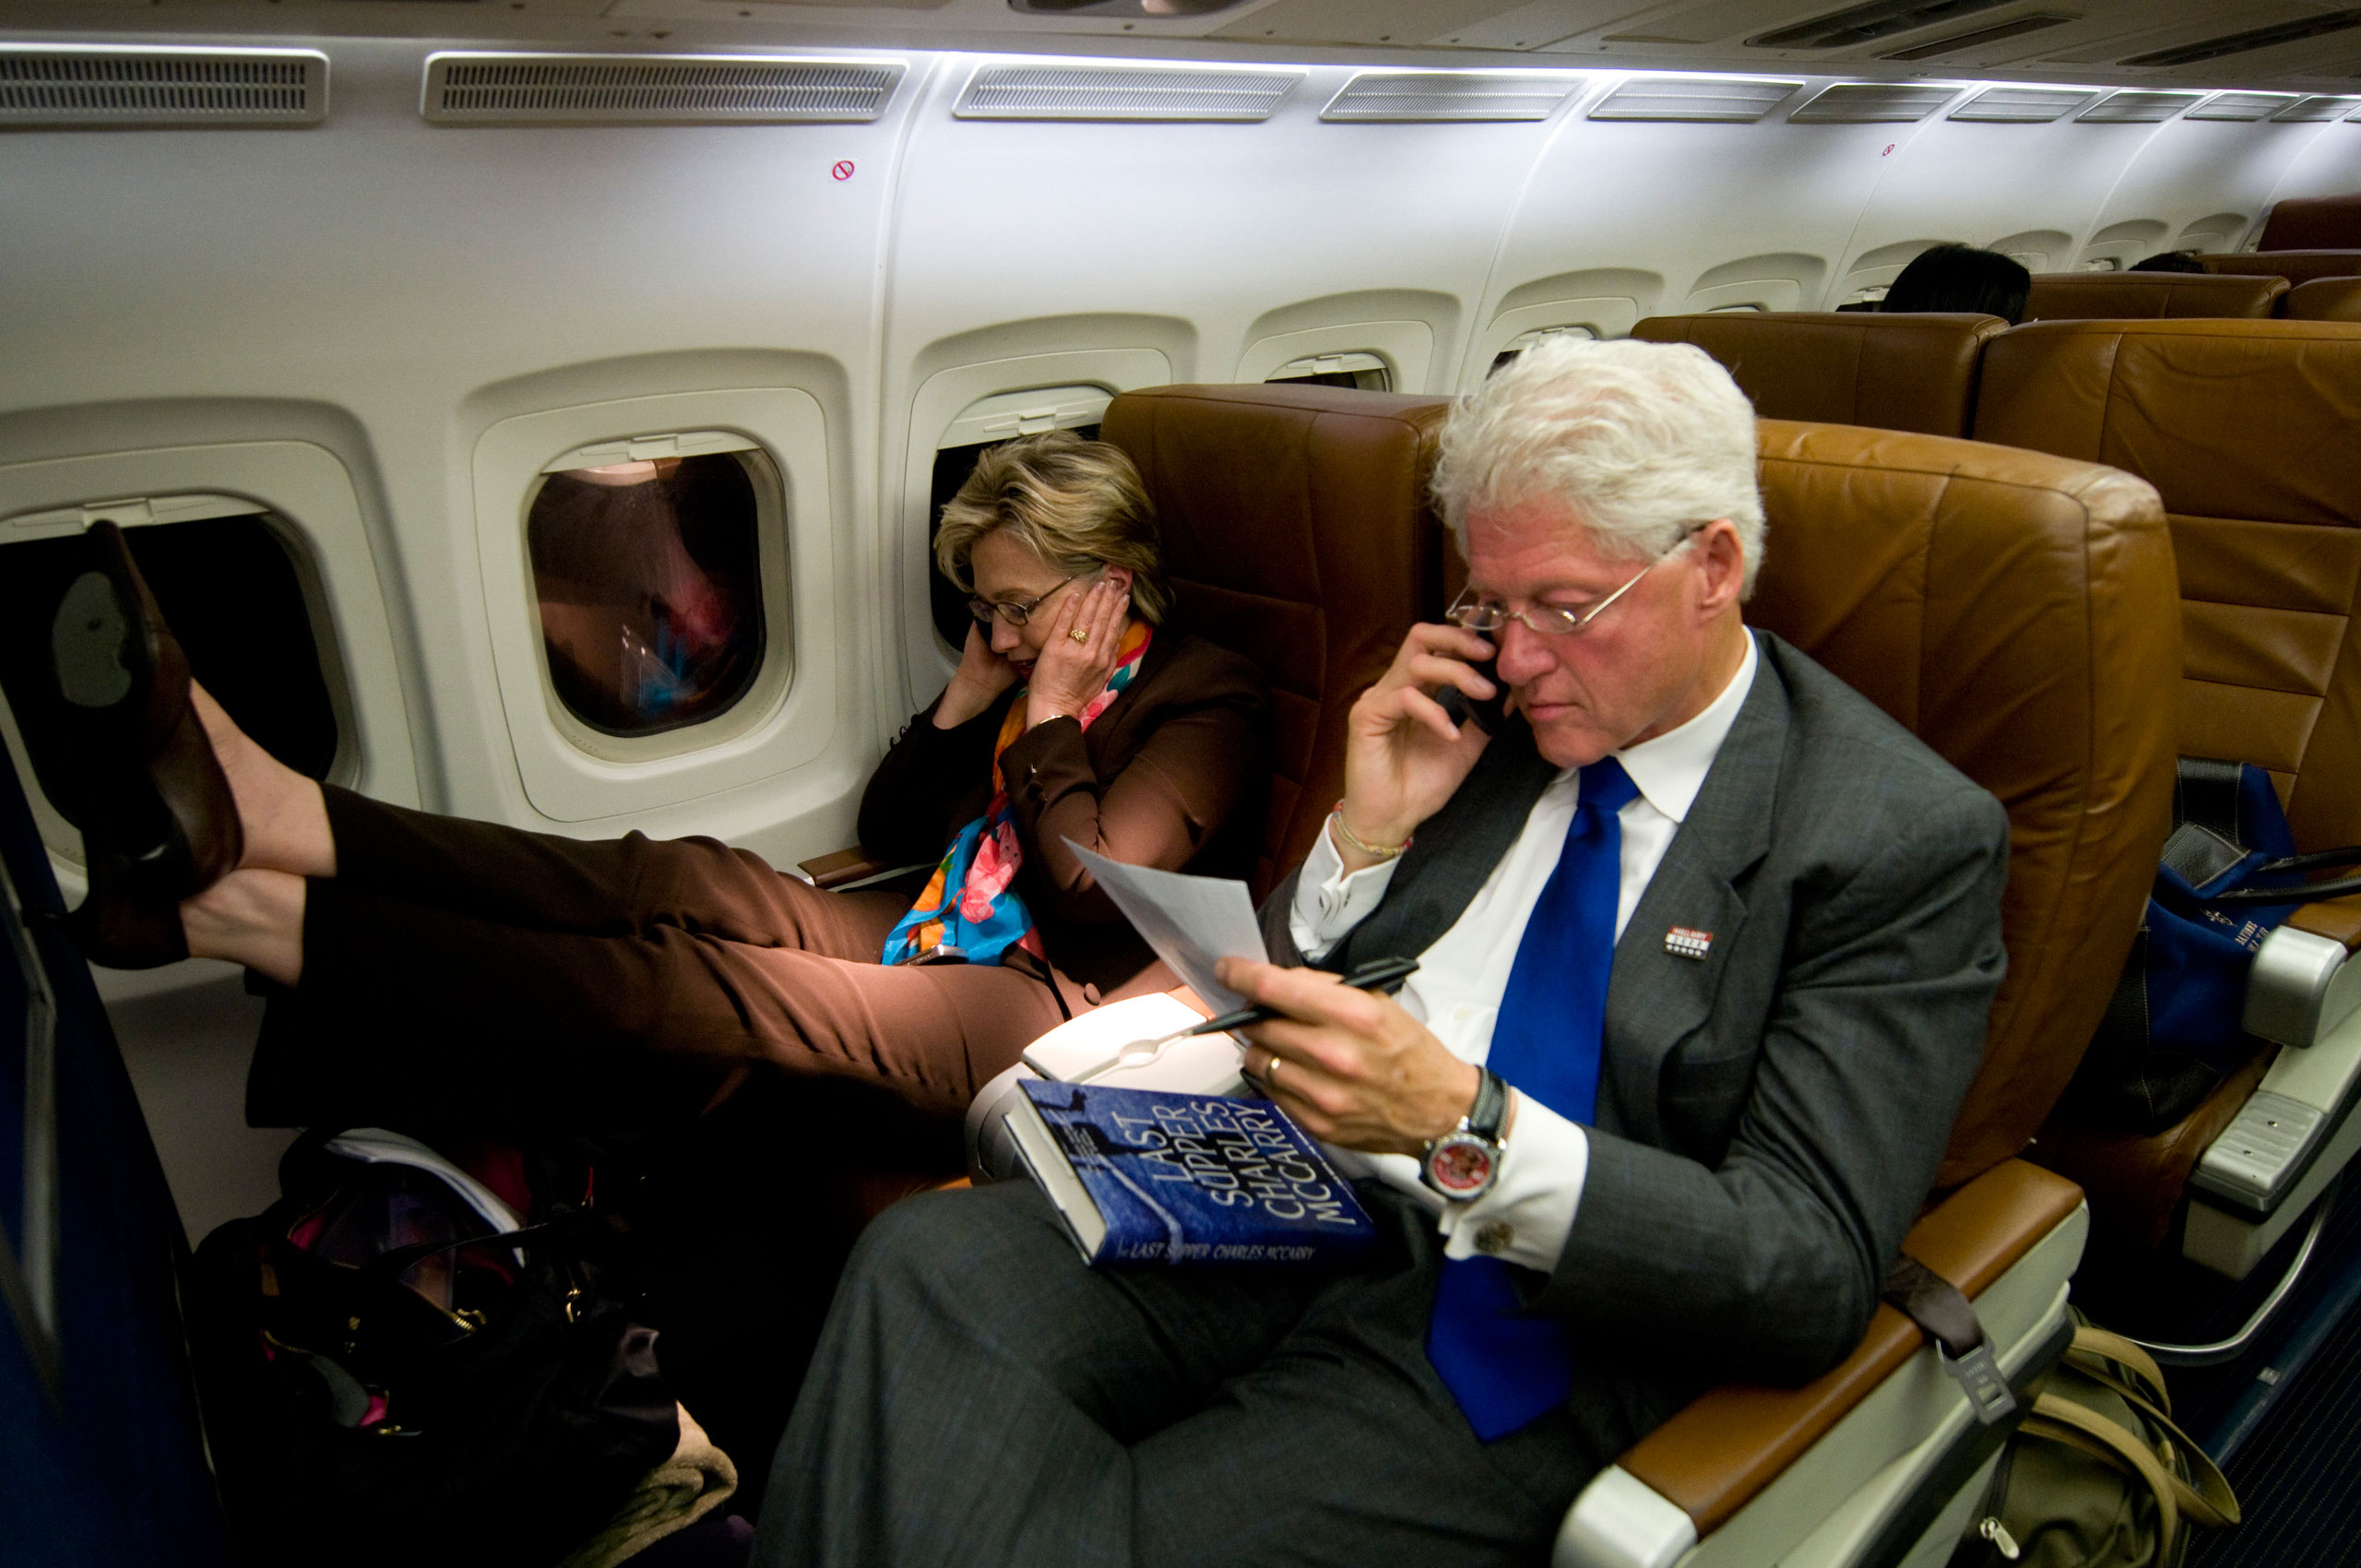 President Clinton and Hillary Clinton on the campaign plane, heading back to Washington after one of her last campaign stops.